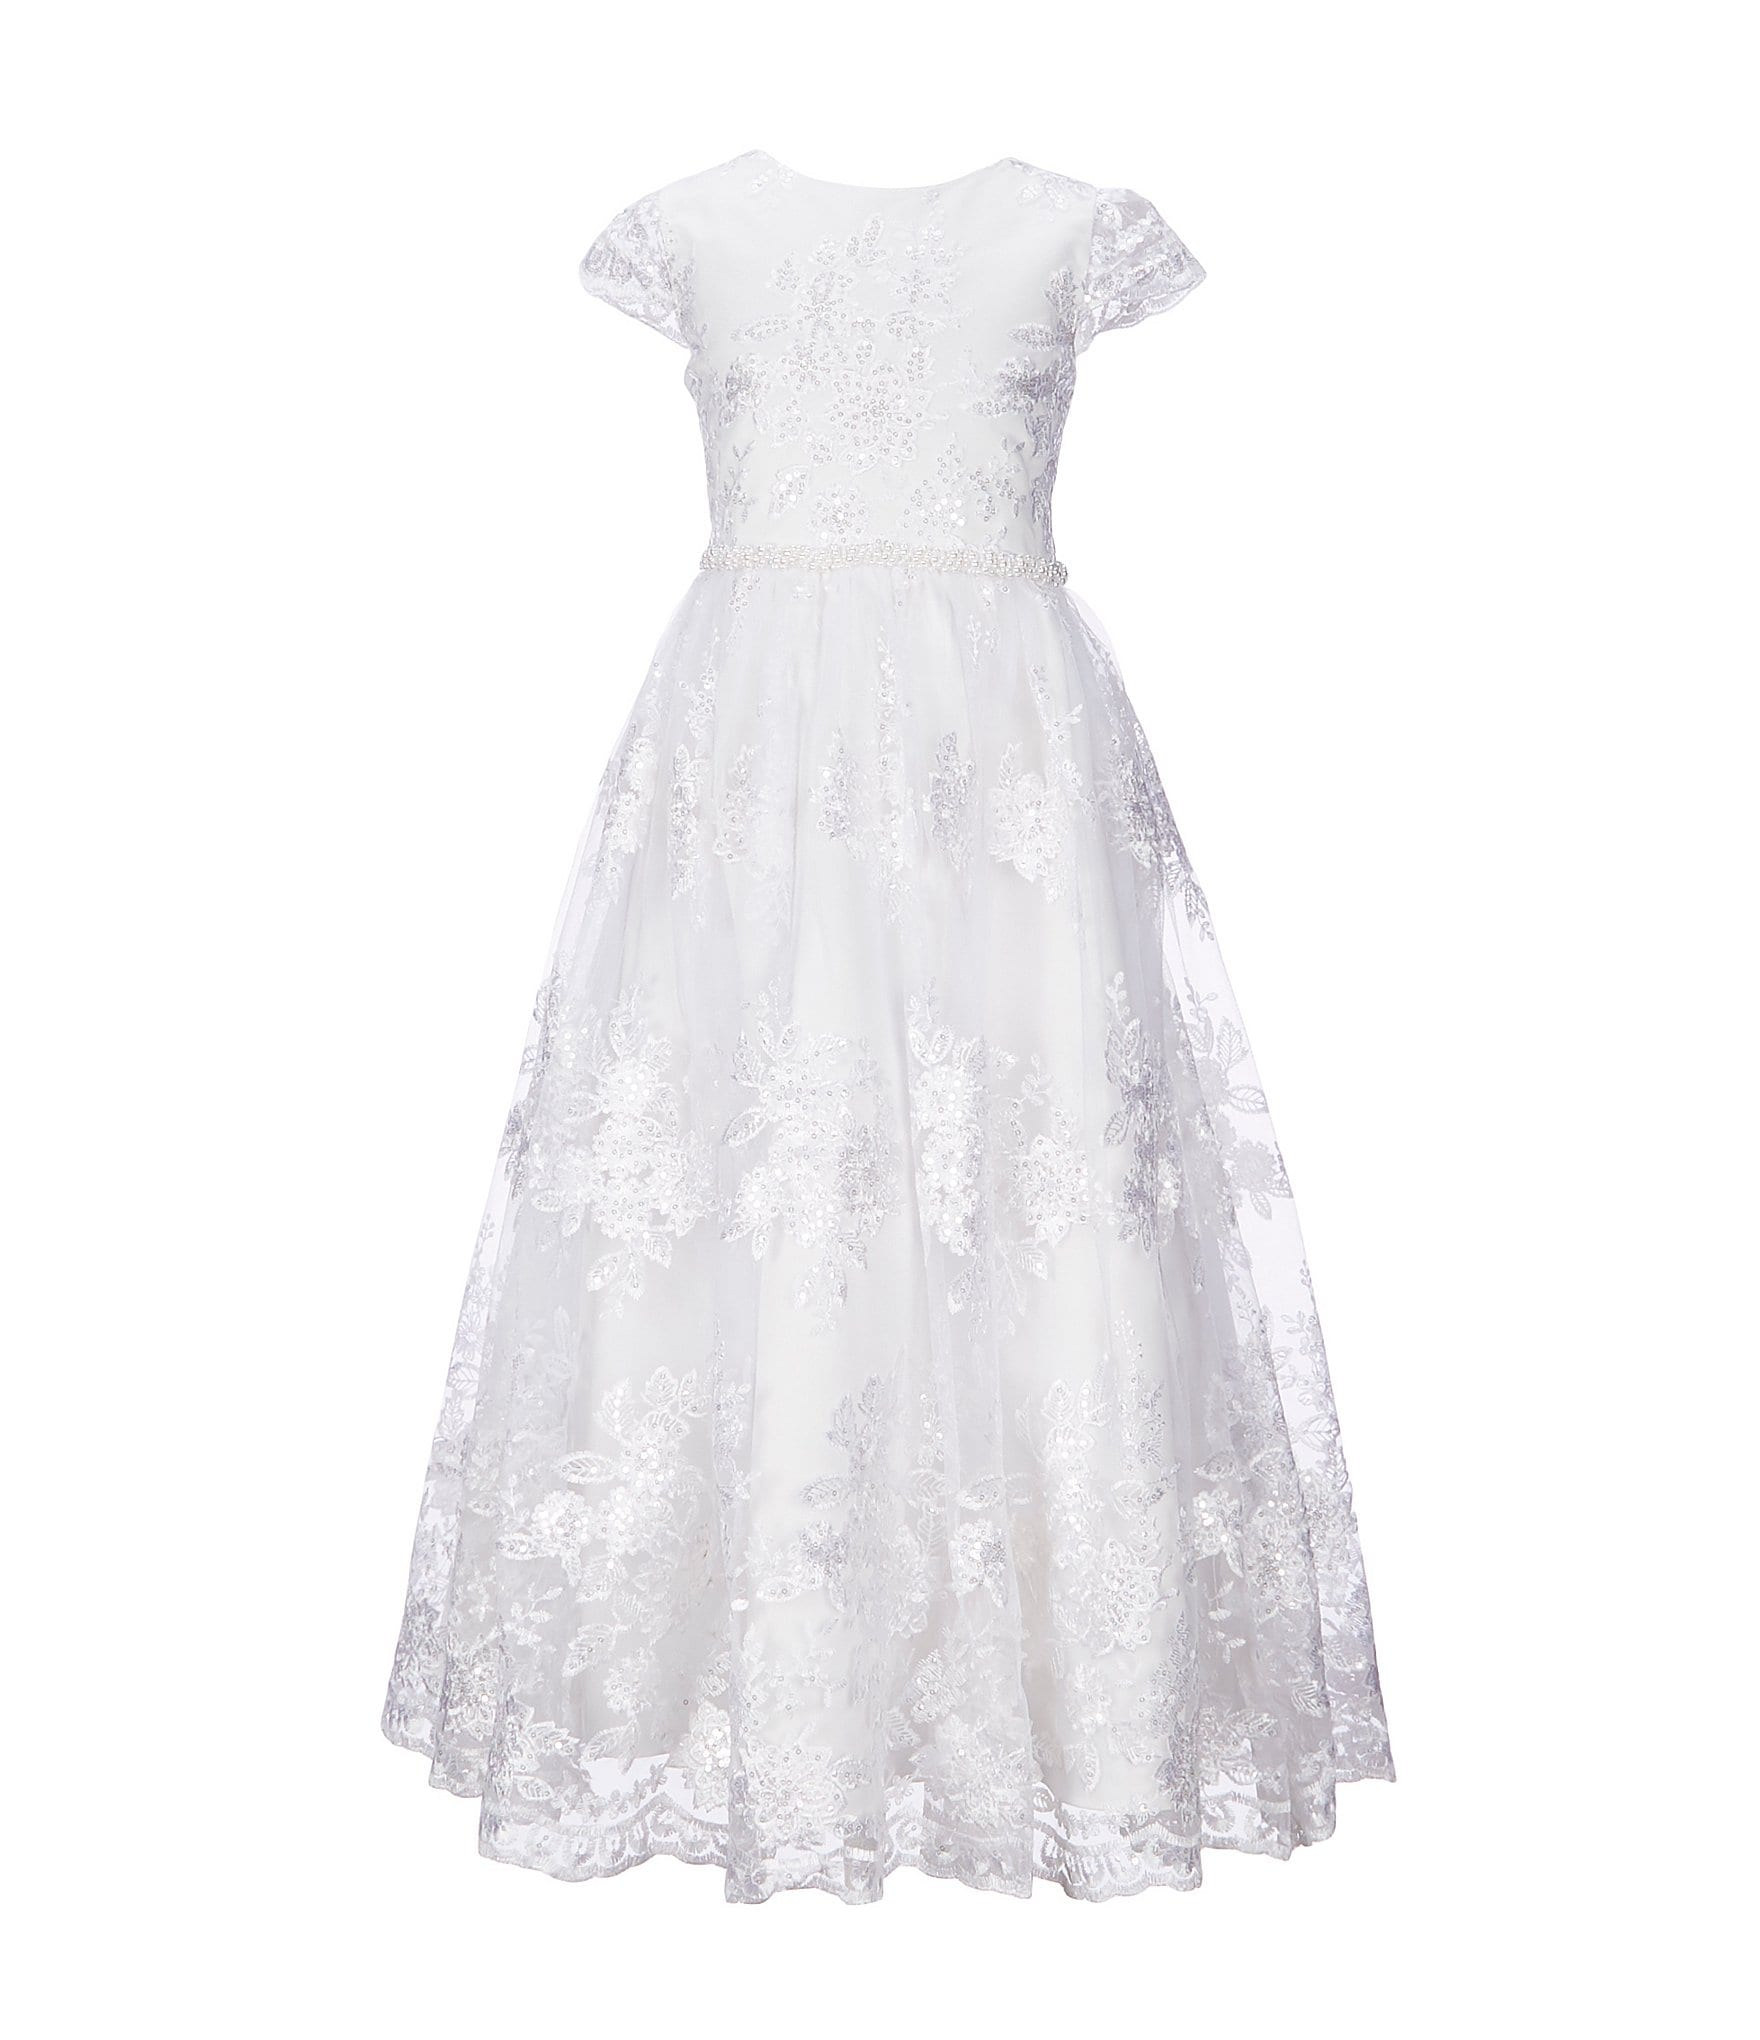 ef2058cee86f Girls  Special Occasion Dresses 7-16